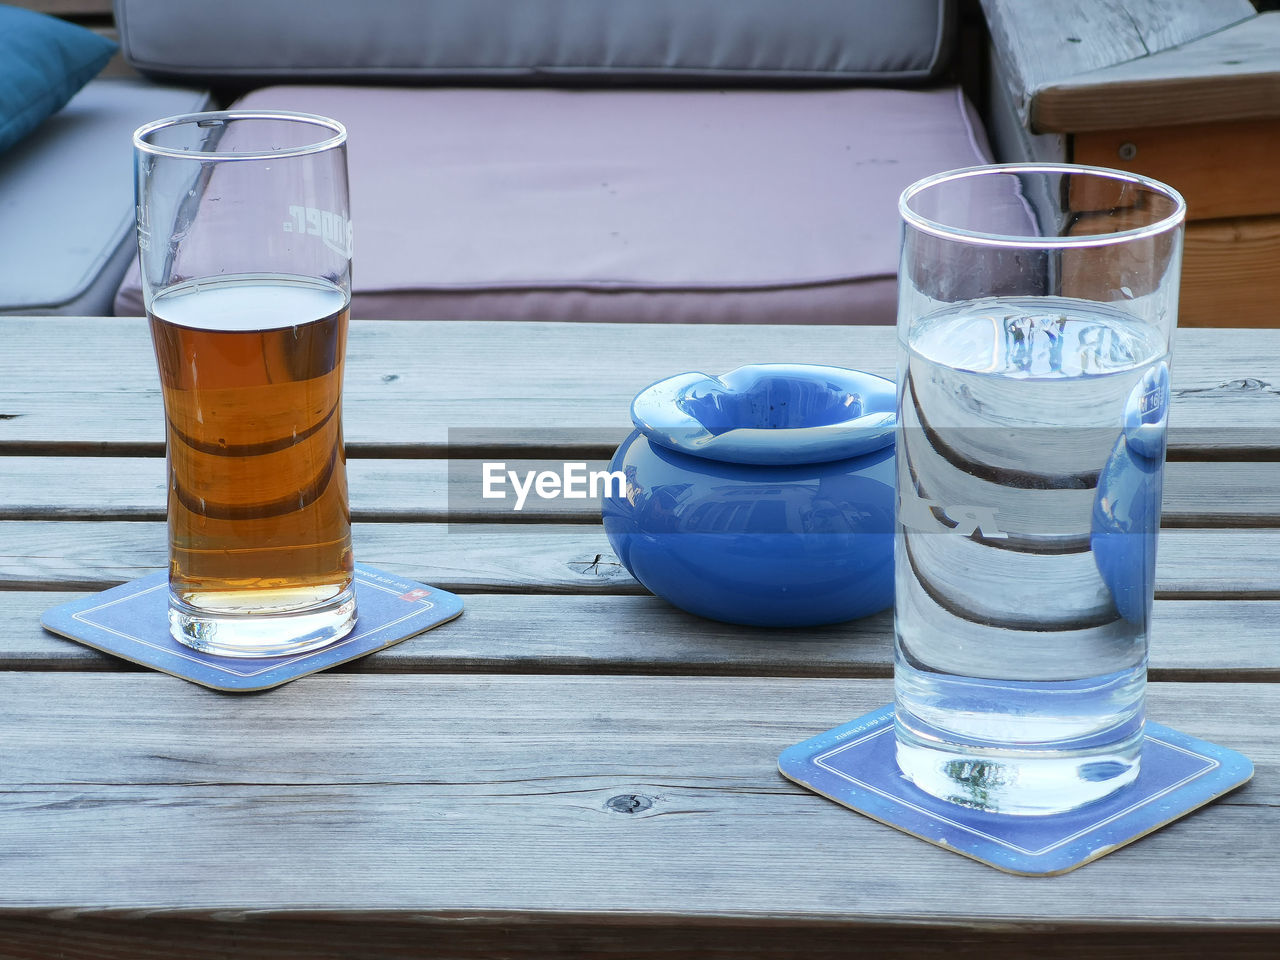 table, drink, drinking glass, food and drink, refreshment, glass, household equipment, still life, blue, freshness, close-up, wood - material, no people, indoors, water, day, drinking water, transparent, alcohol, crockery, tray